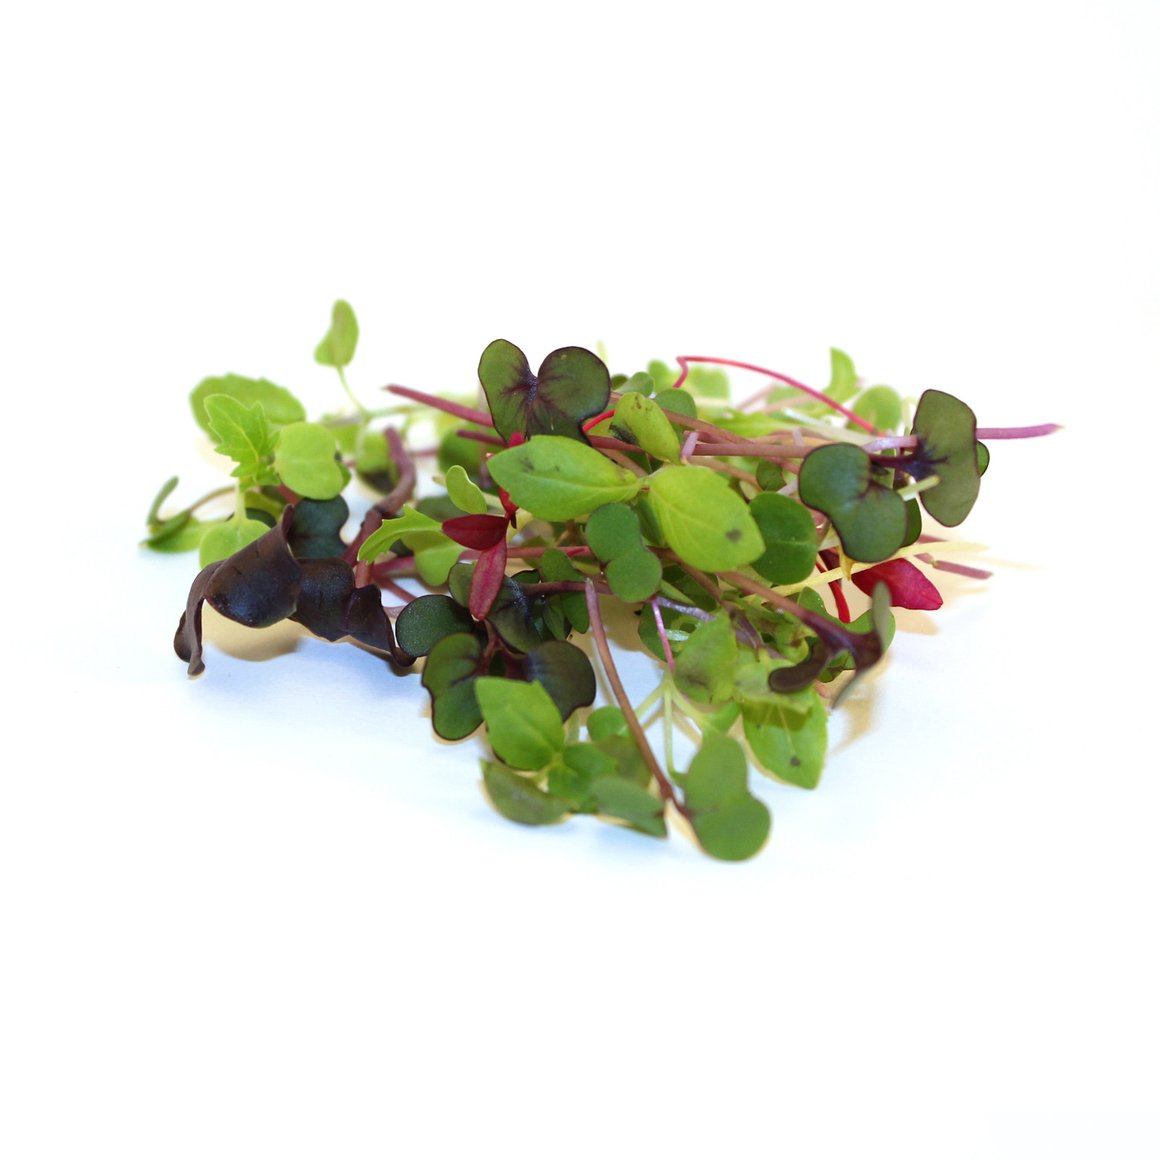 Microgreens: Rainbow Mix - 2oz